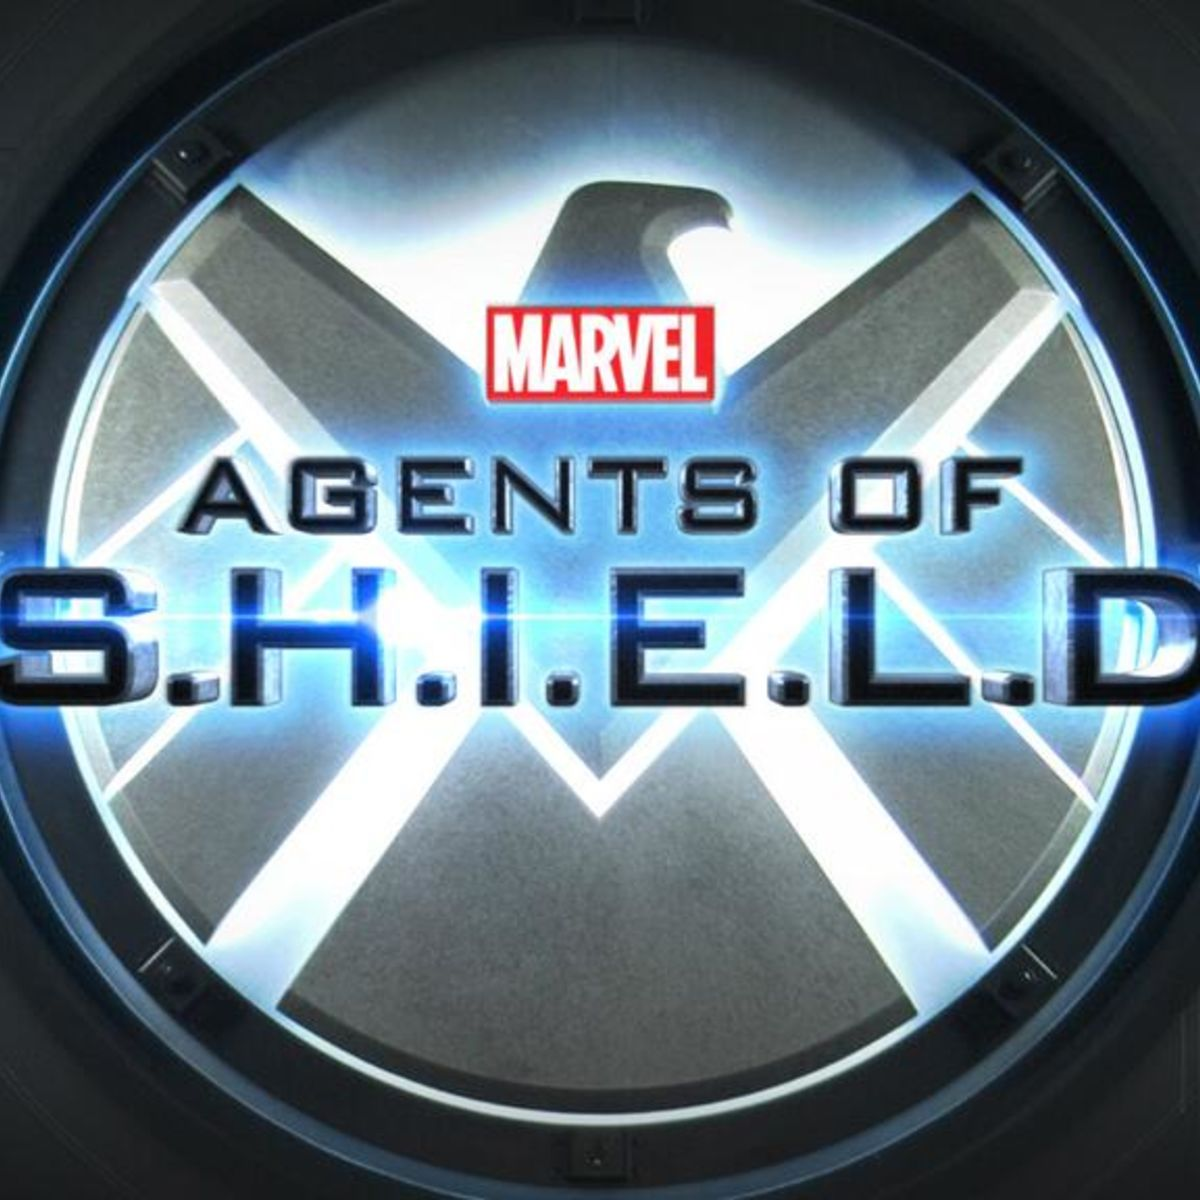 agents-of-shield-logo.jpg